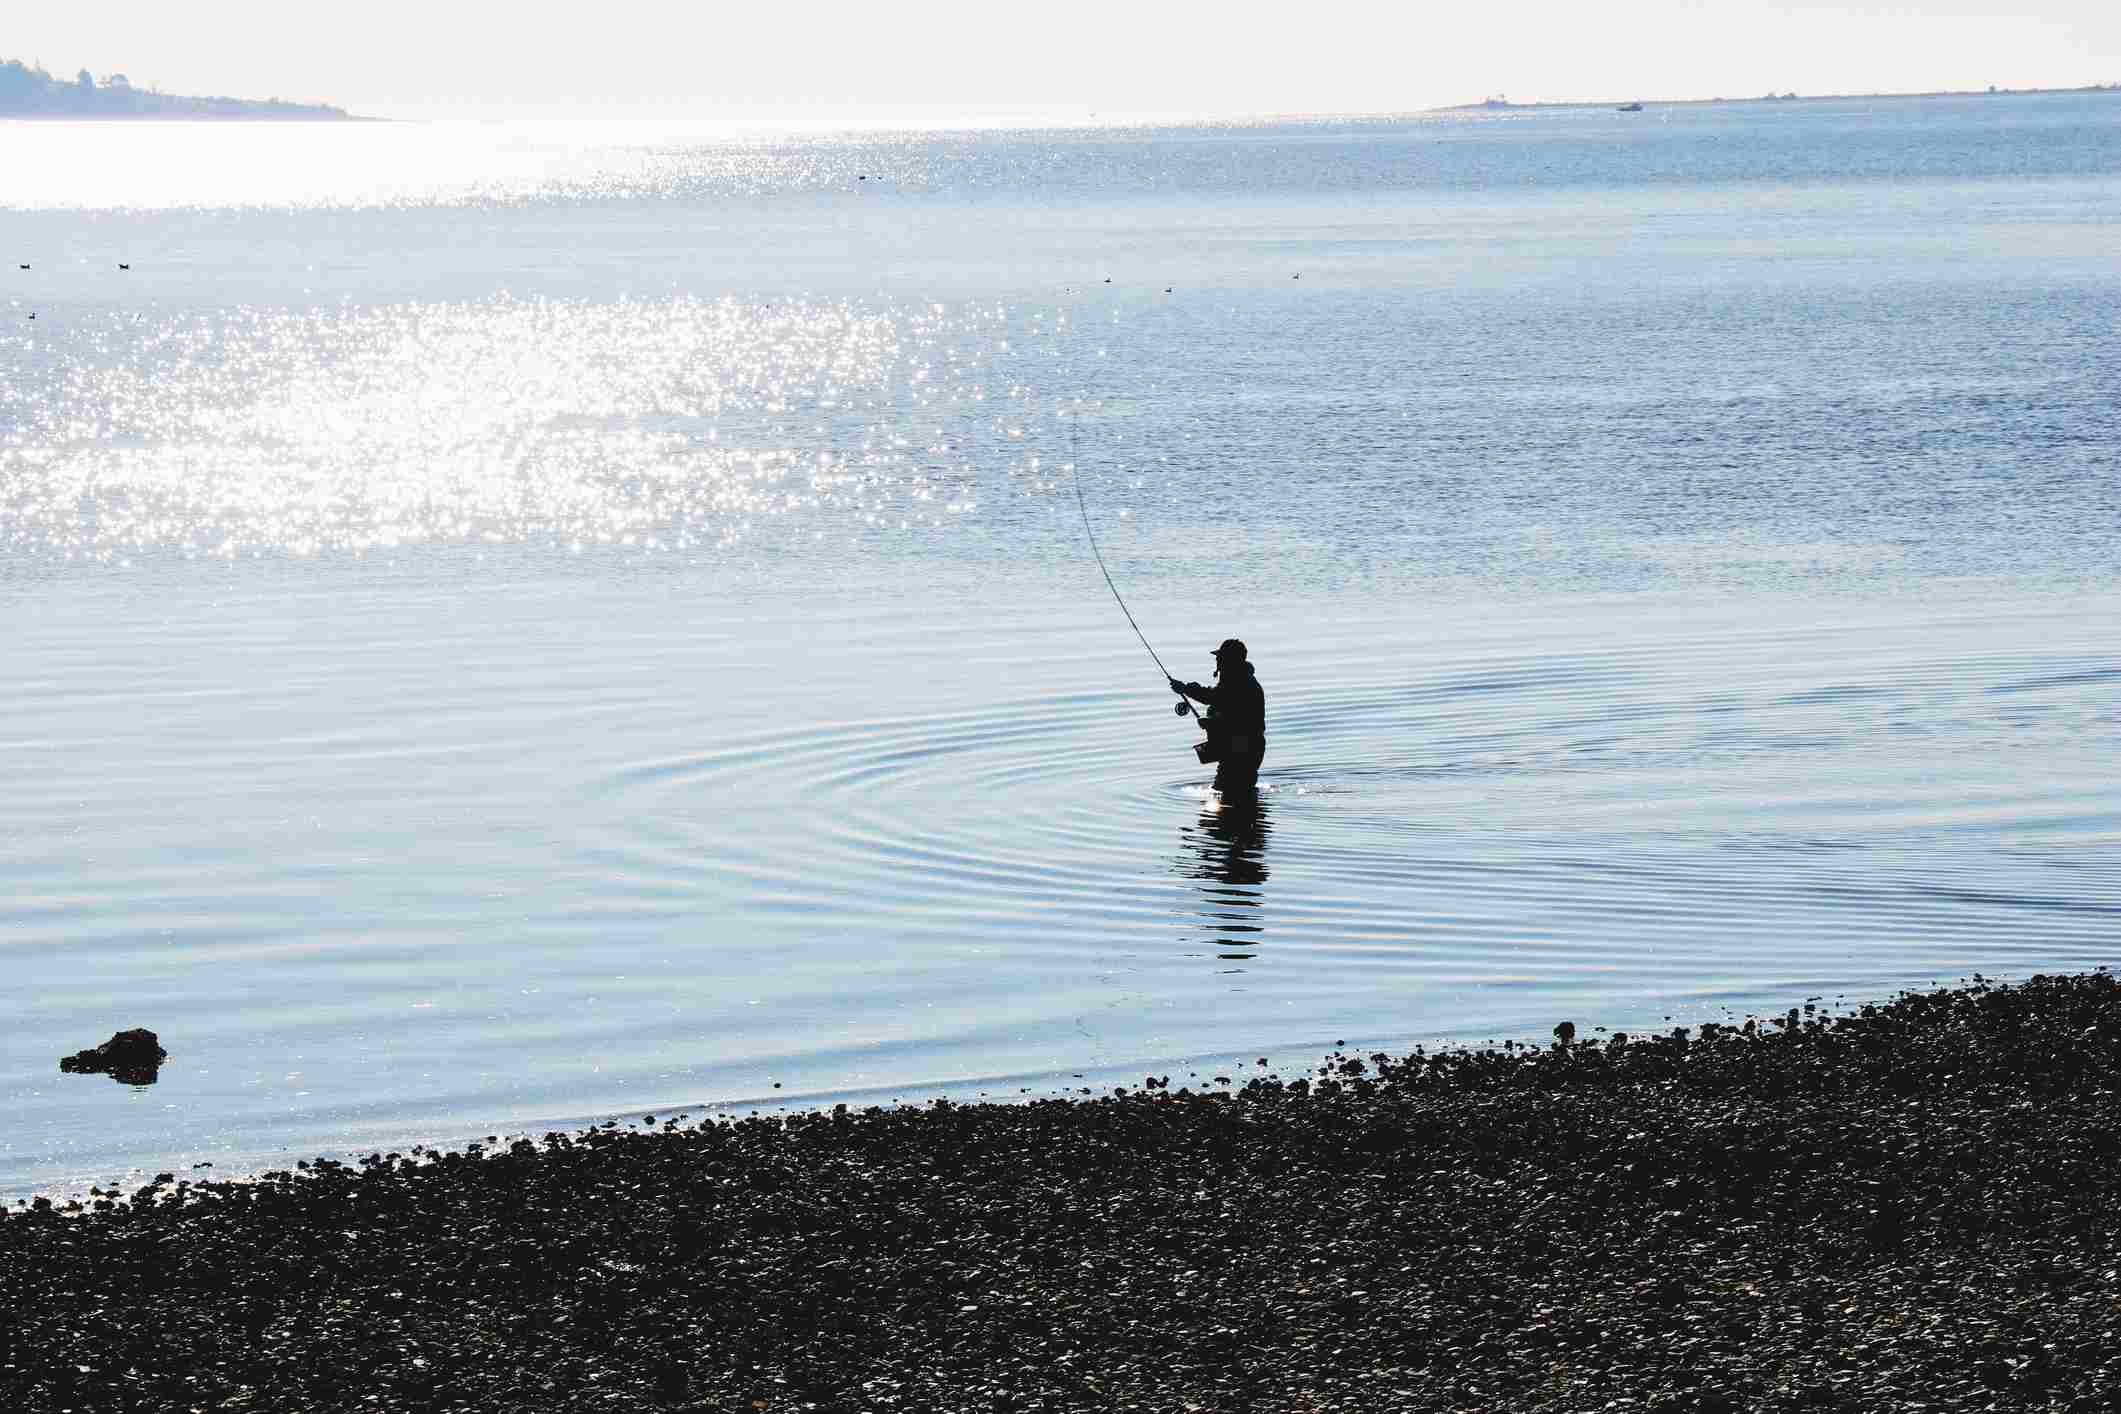 Man fishing in the water near Victoria, Canada.